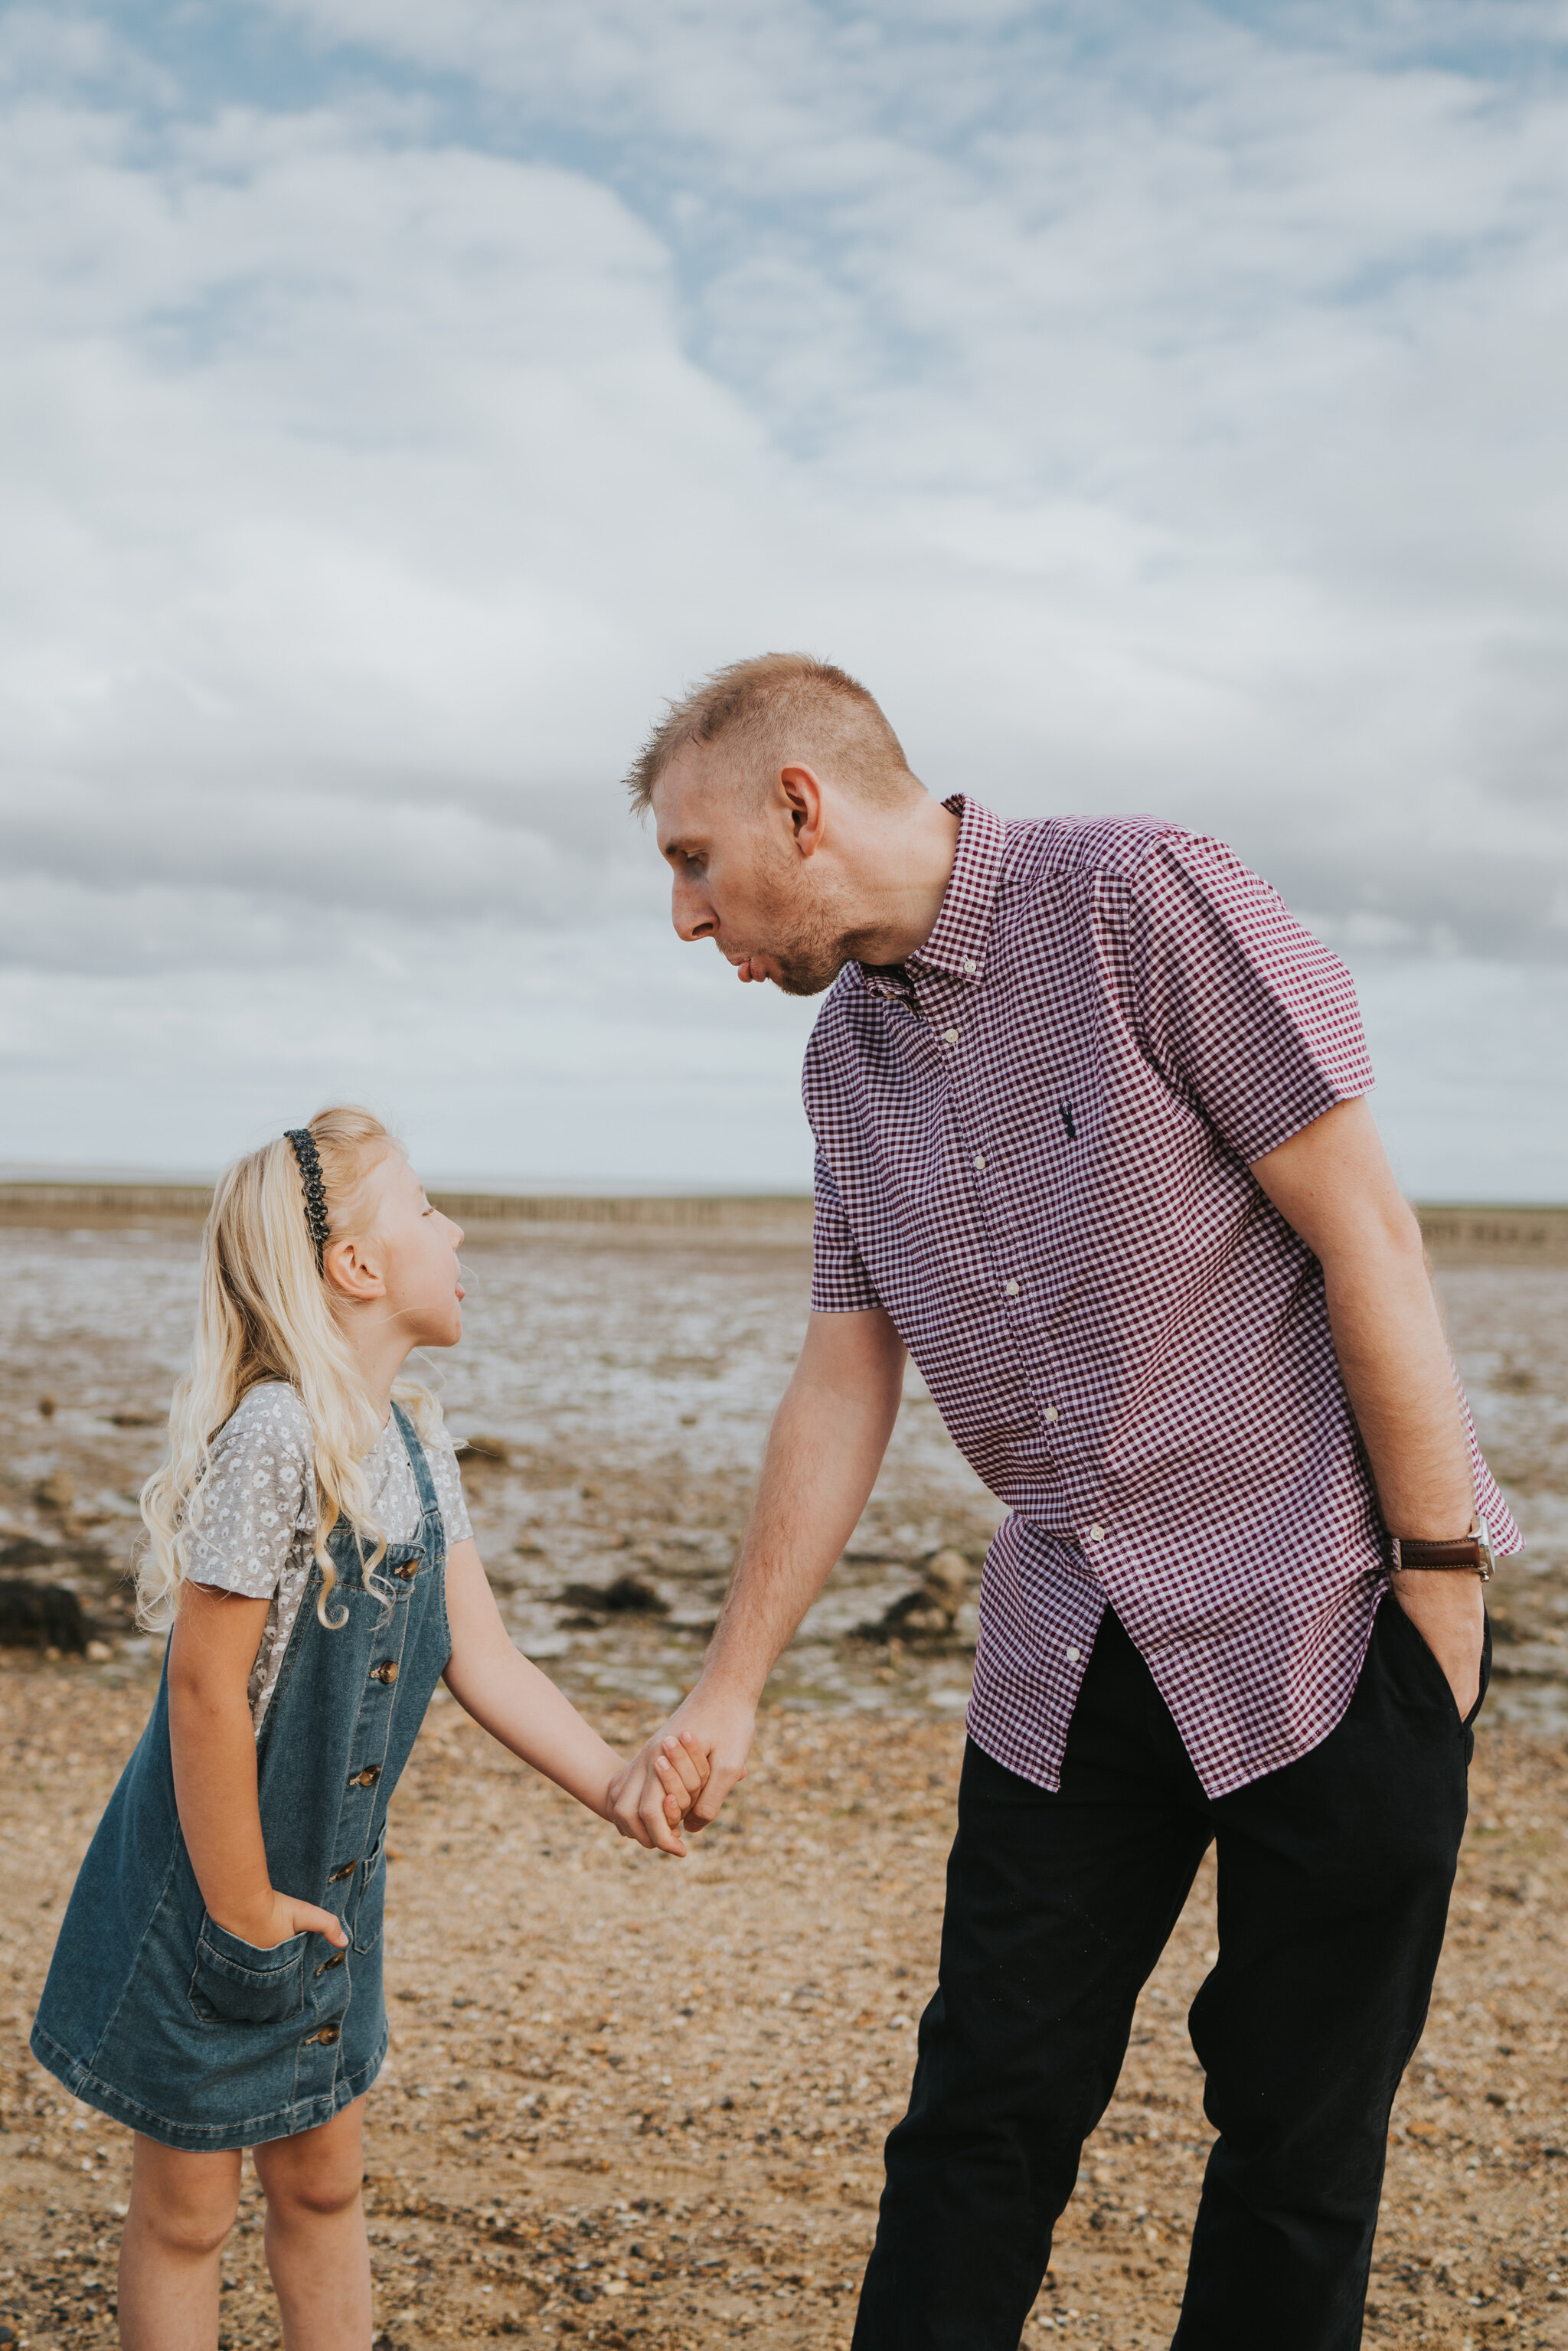 celebratory-beach-family-session-thomson-family-cudmore-grove-east-mersea-grace-elizabeth-colchester-essex-devon-suffolk-and-norfolk-alternative-wedding-and-family-photographer (33 of 53).jpg